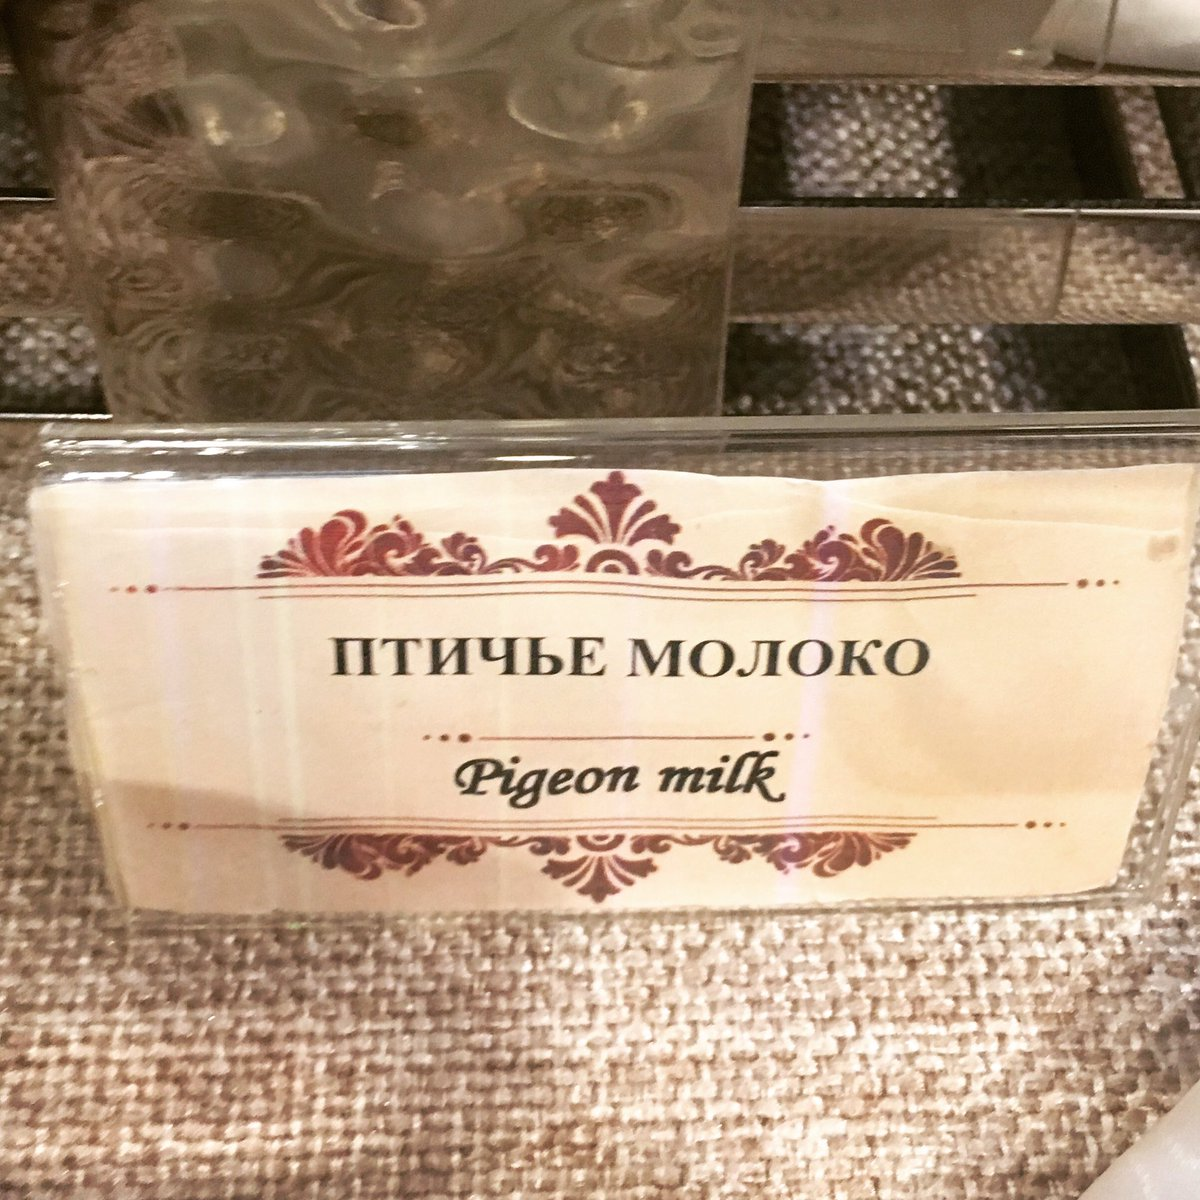 Skim milk marriage meaning relationship